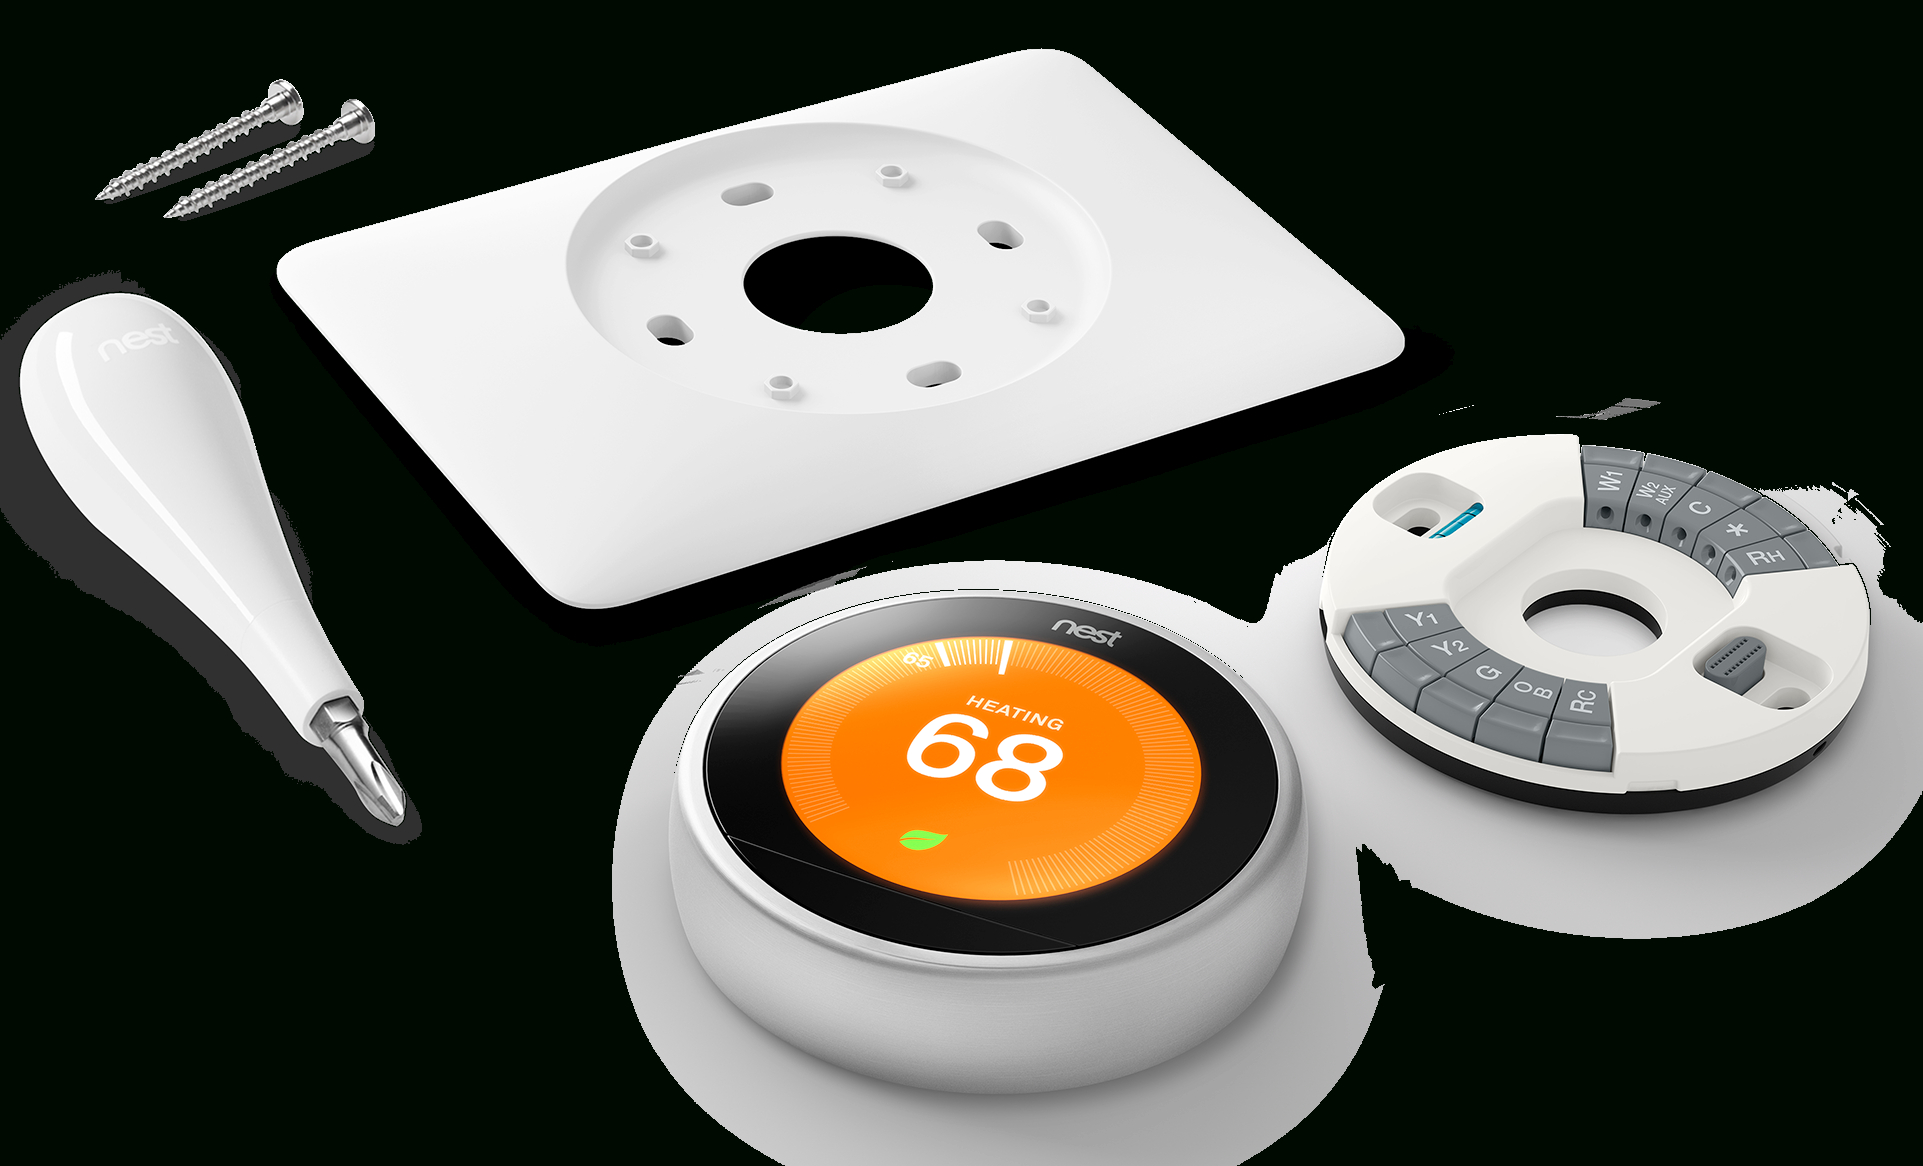 How To Install Your Nest Thermostat - Nest Gen 2 Wiring Diagram